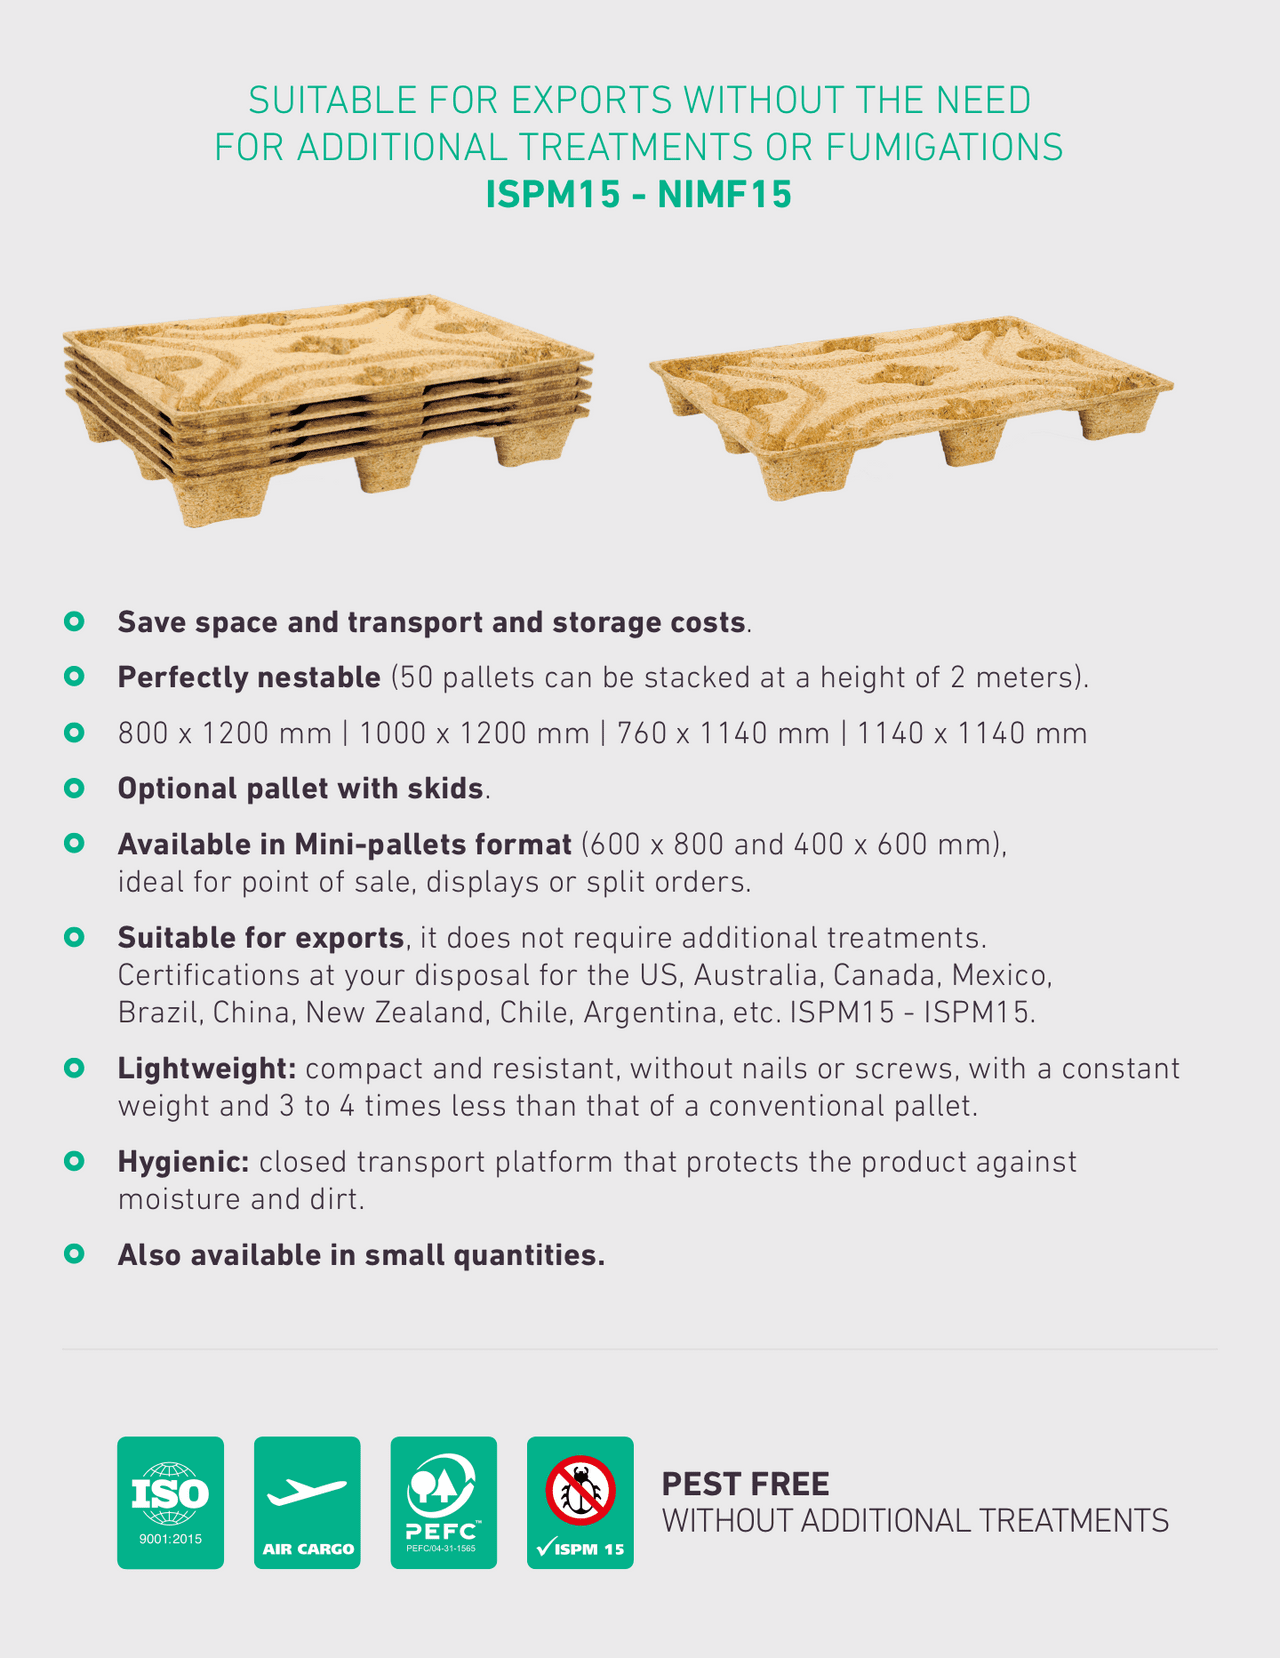 Save space and transport and storage costs. Perfectly nestable (50 pallets can be stacked at a height of 2 meters). 800 x 1200 mm | 1000 x 1200 mm | 760 x 1140 mm | 1140 x 1140 mm Optional pallet with skids. Available in Mini-pallets format (600 x 800 and 400 x 600 mm), 